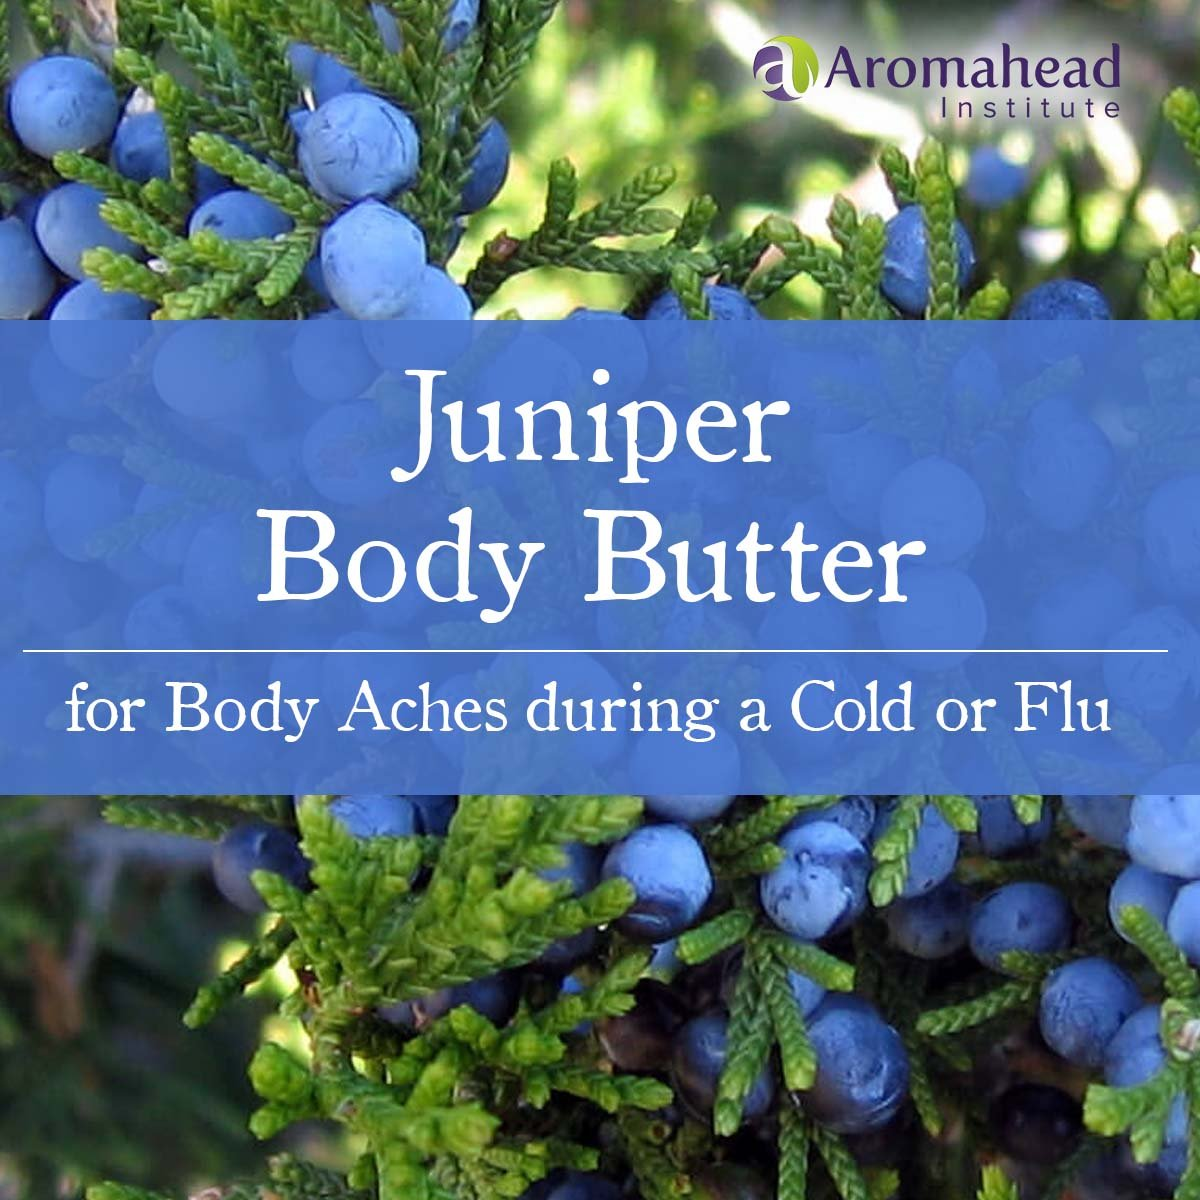 February-Blog-Feb 26-title-Juniper Body Butter-1200 x 1200